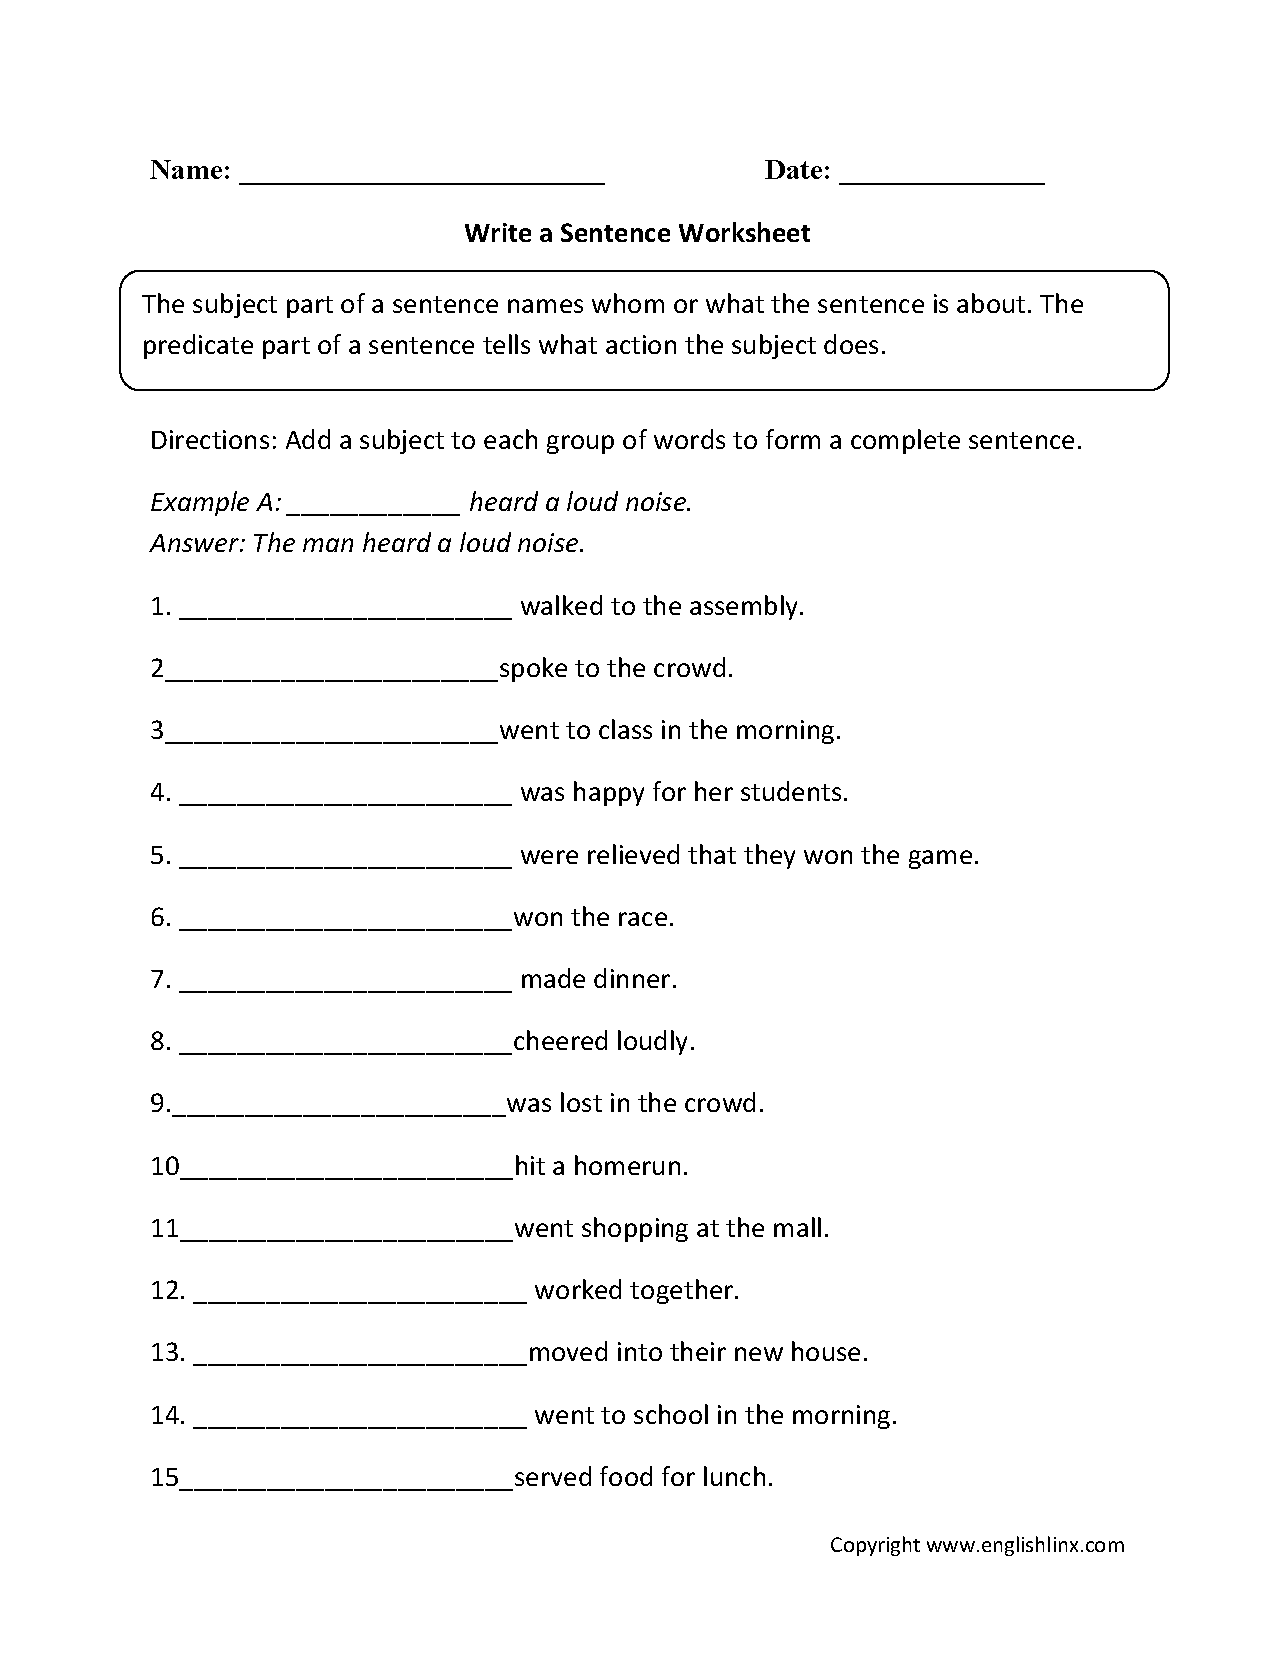 Worksheets Sentence Types Worksheets sentence structure worksheets building write a worksheet